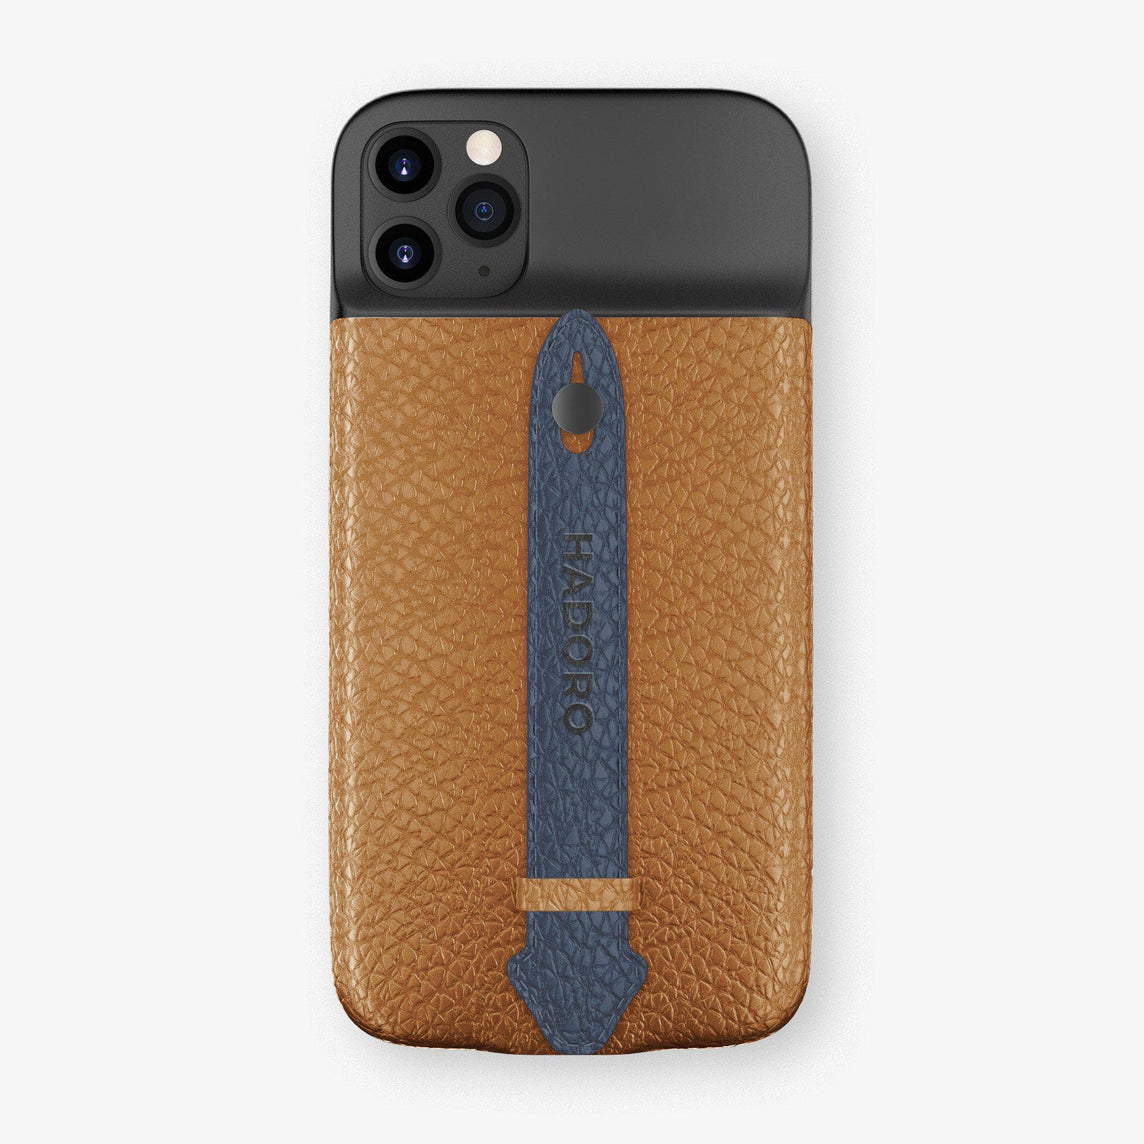 Calfskin Battery Finger Case for iPhone 11 Pro Max | Cognac/Navy Blue - Black without-personalization